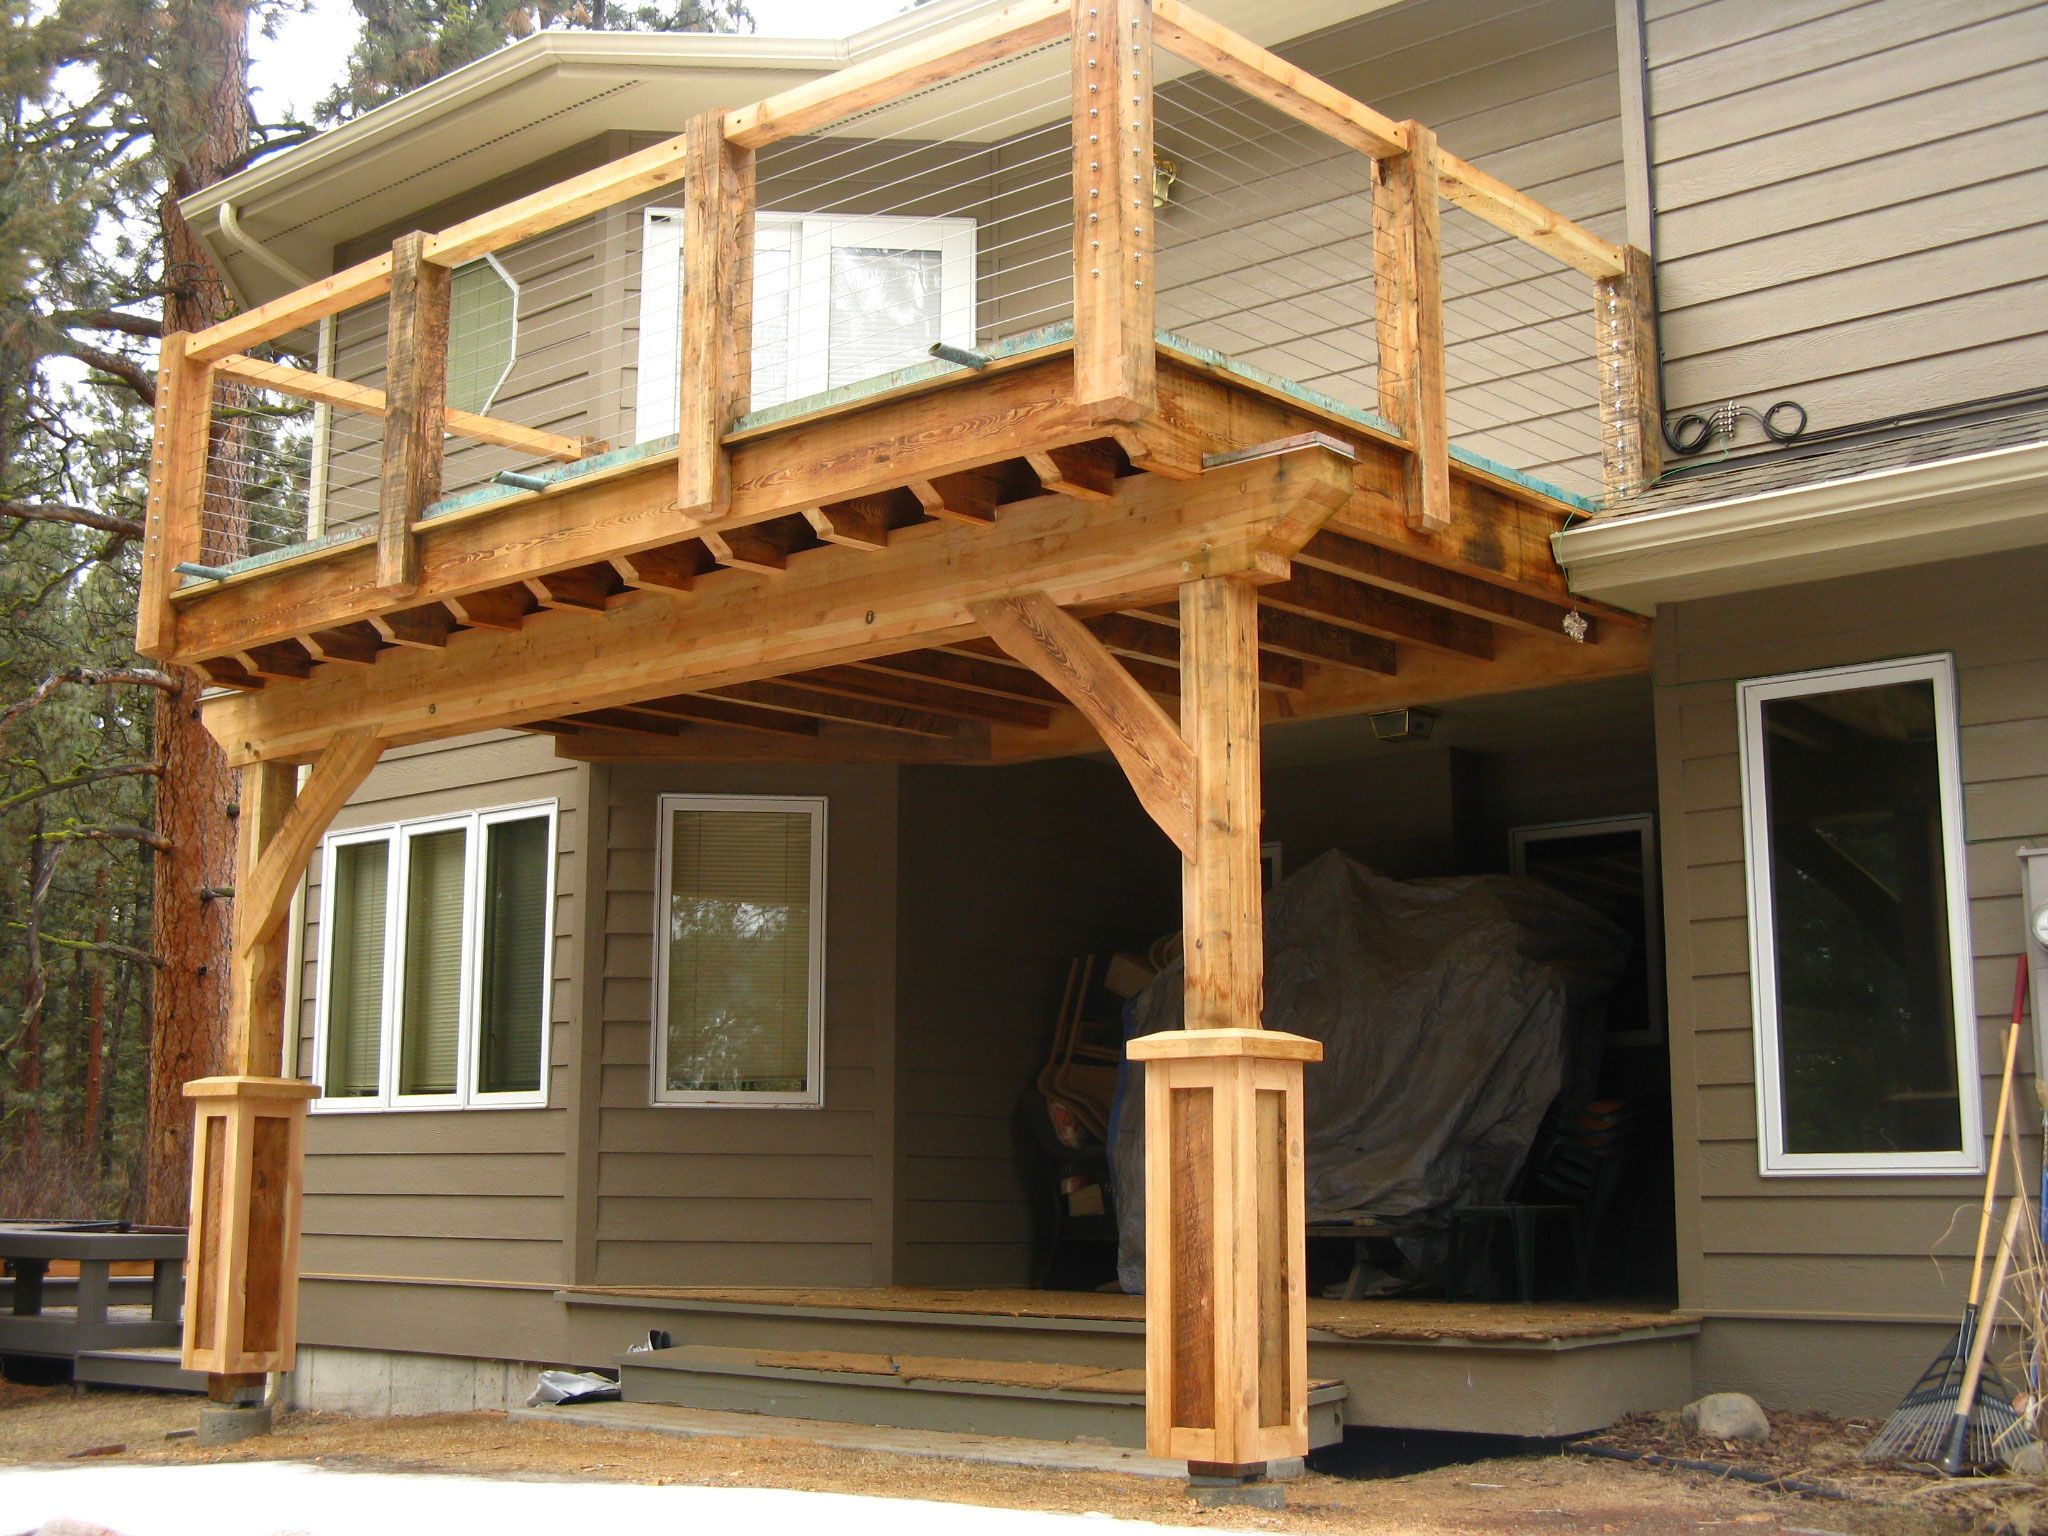 Back porch roof ideas - Over The Roof Patio Patio Roof Covers Awning Roofing And Canopy Design Ideas